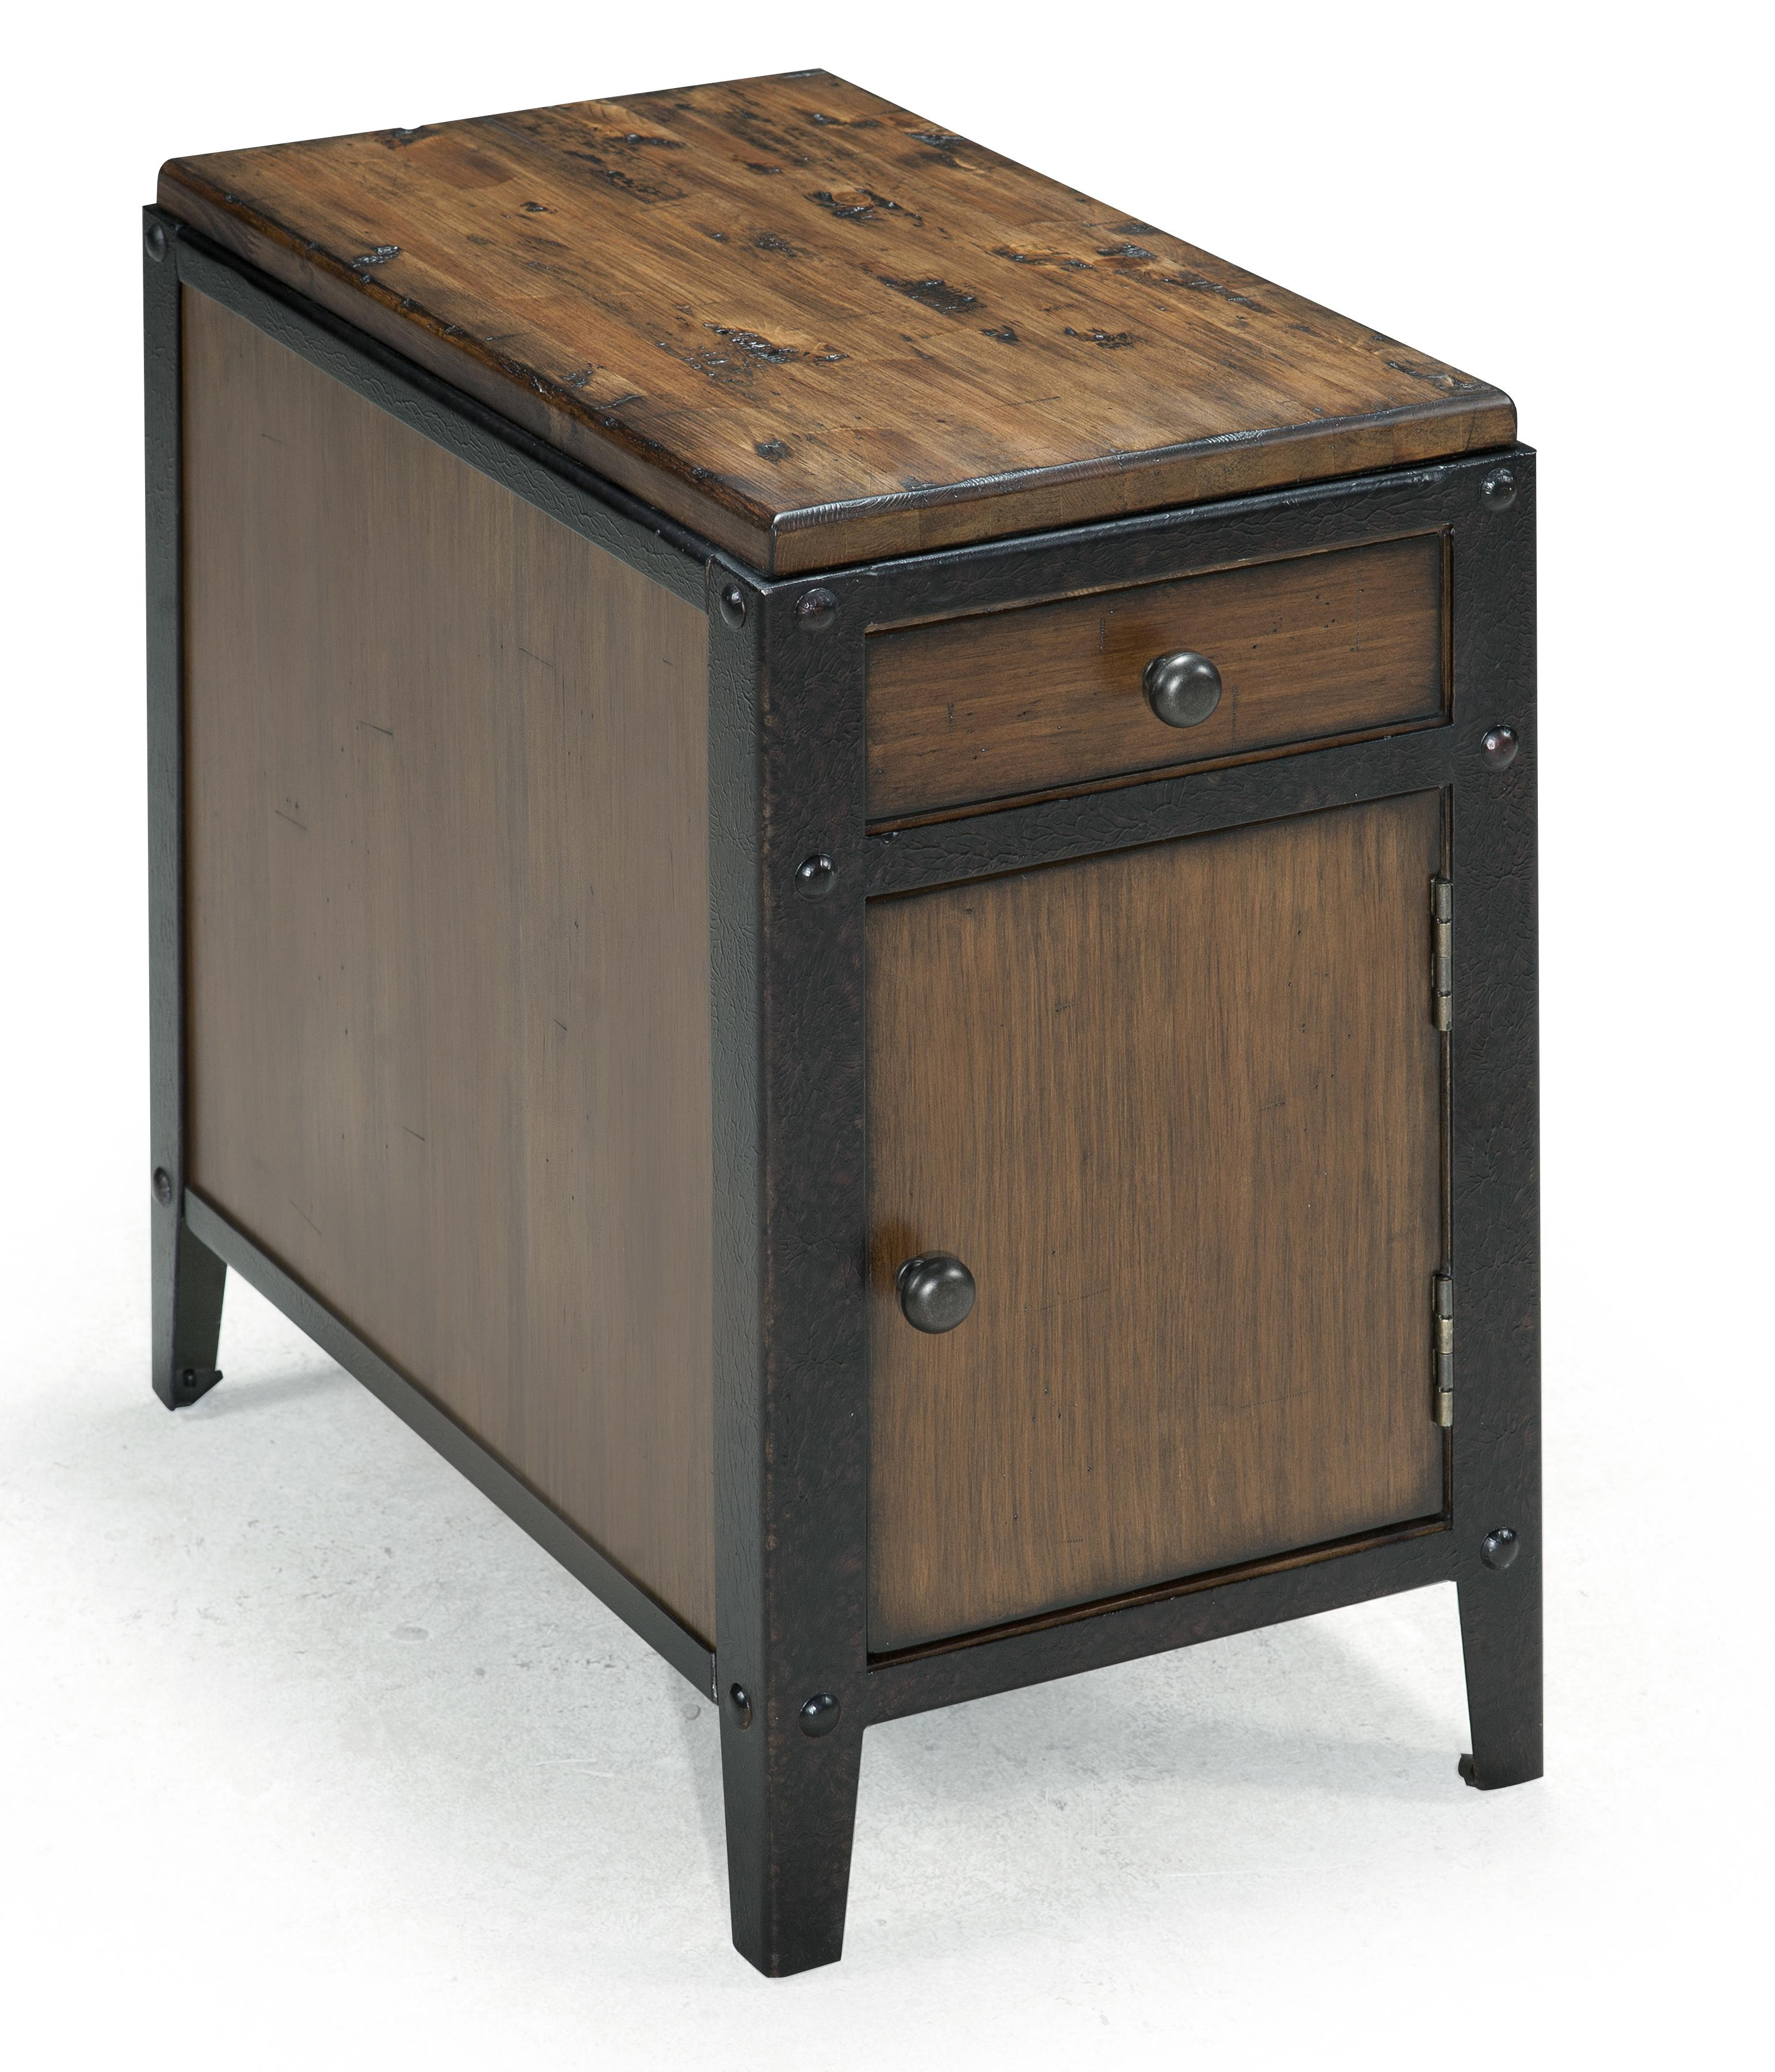 Pinebrook Chairside Door End Table by Magnussen Home at Johnny Janosik